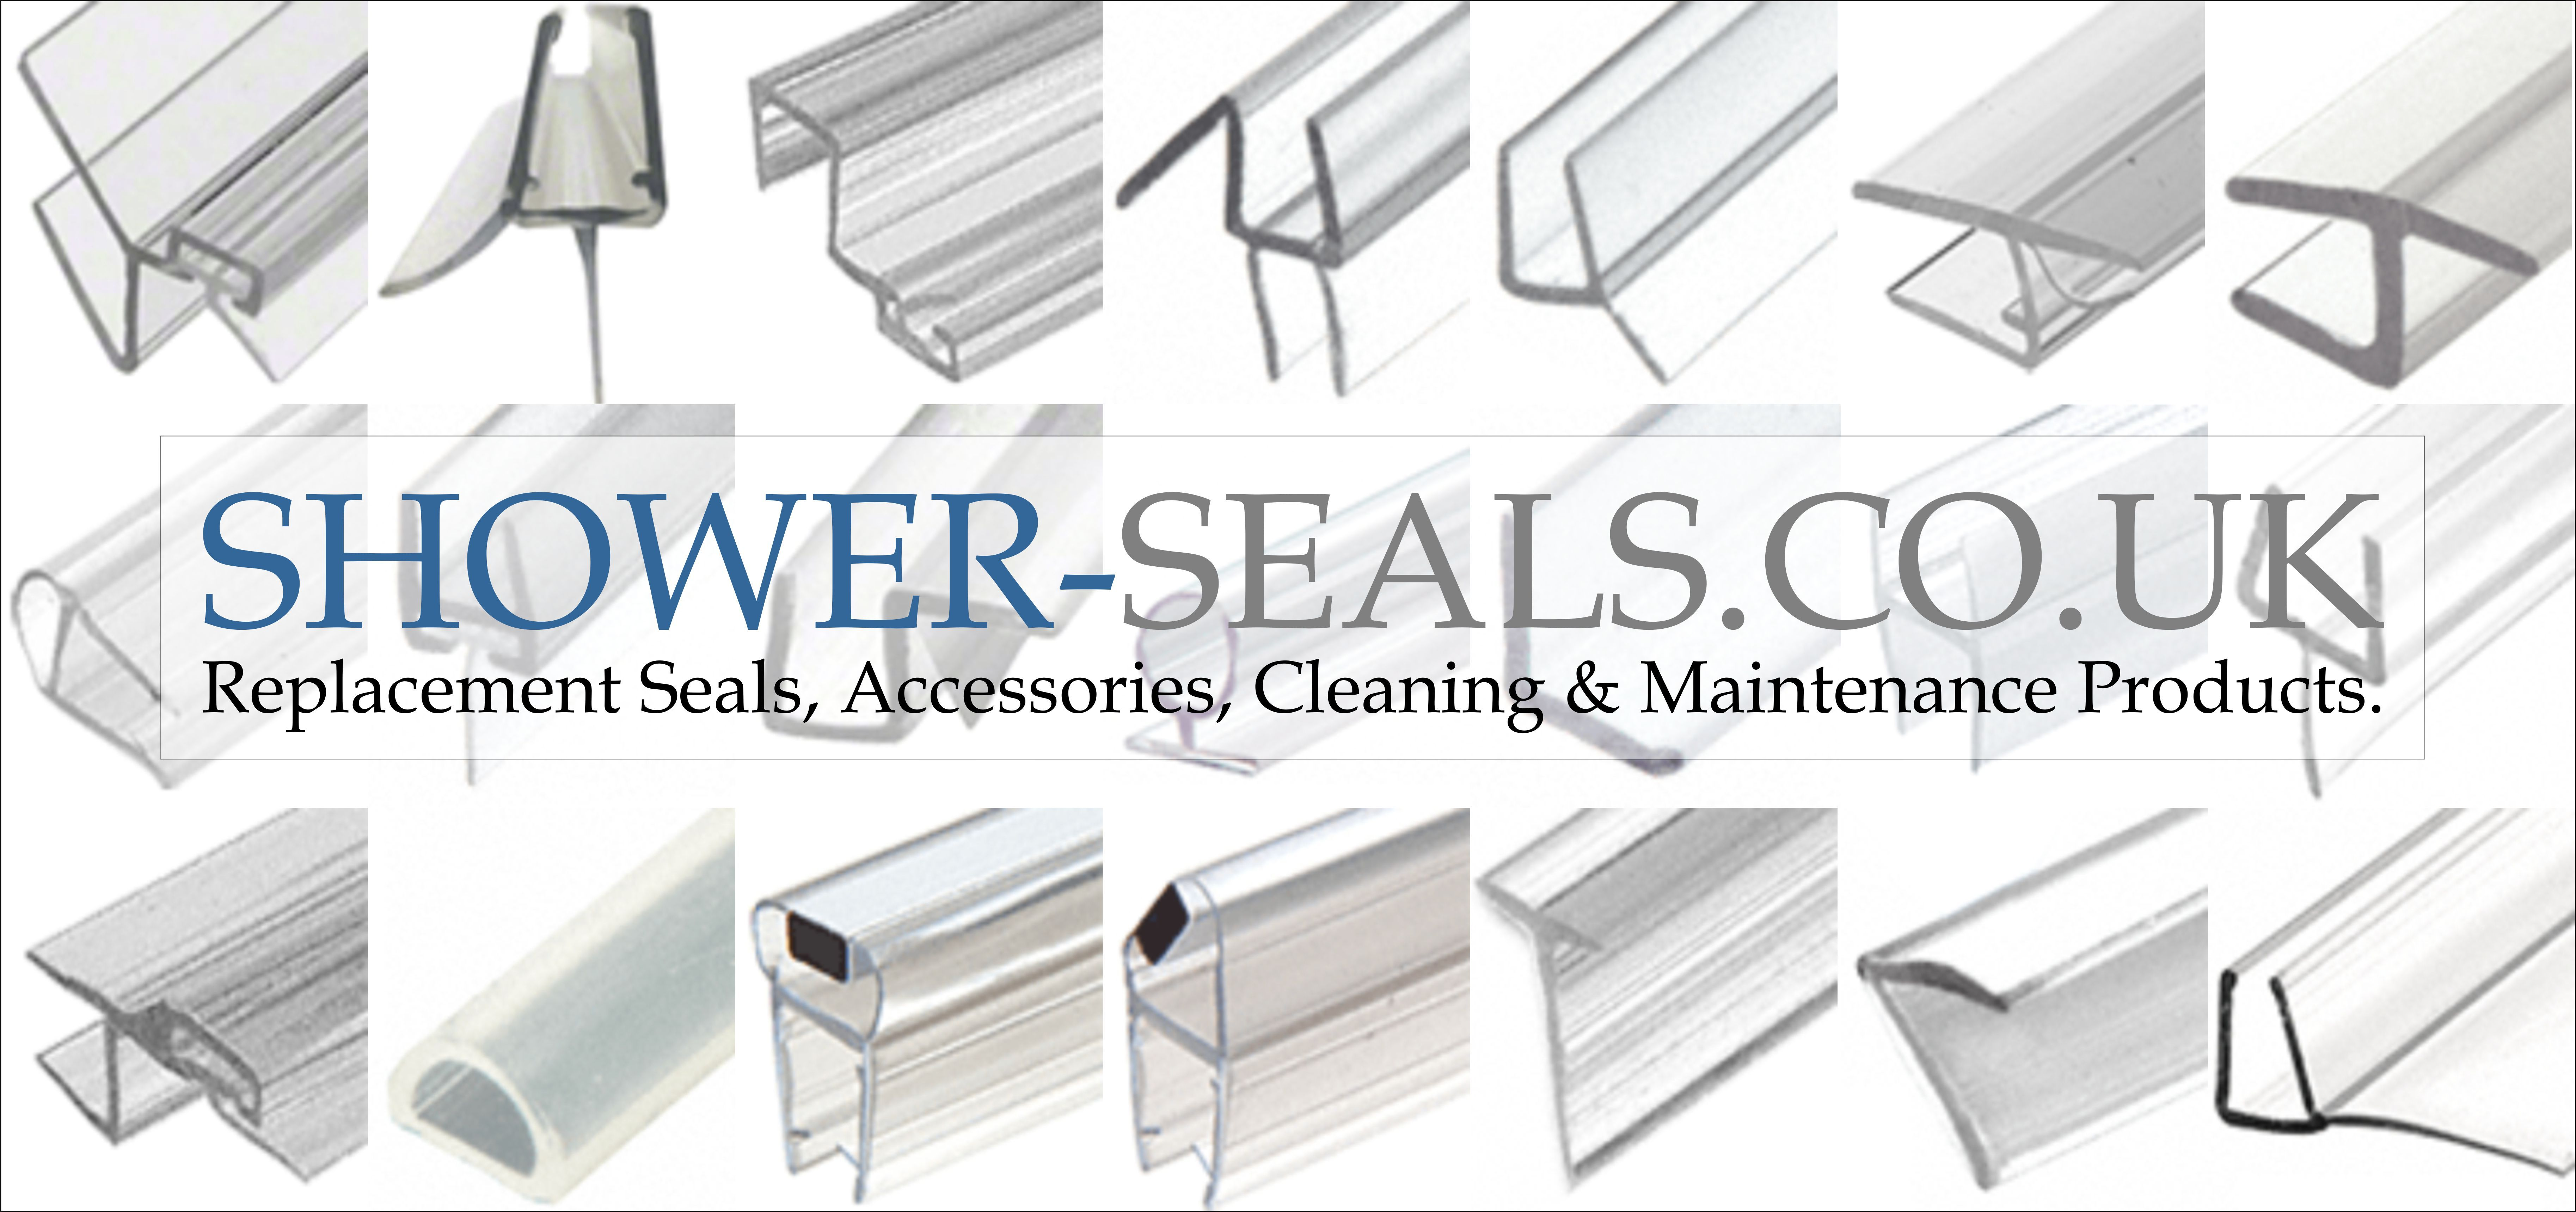 Glass Shower Door Fixed Screen Seals Thresholds Available For Many Different Shower Enclosures An Replacement Shower Doors Shower Screen Glass Shower Doors